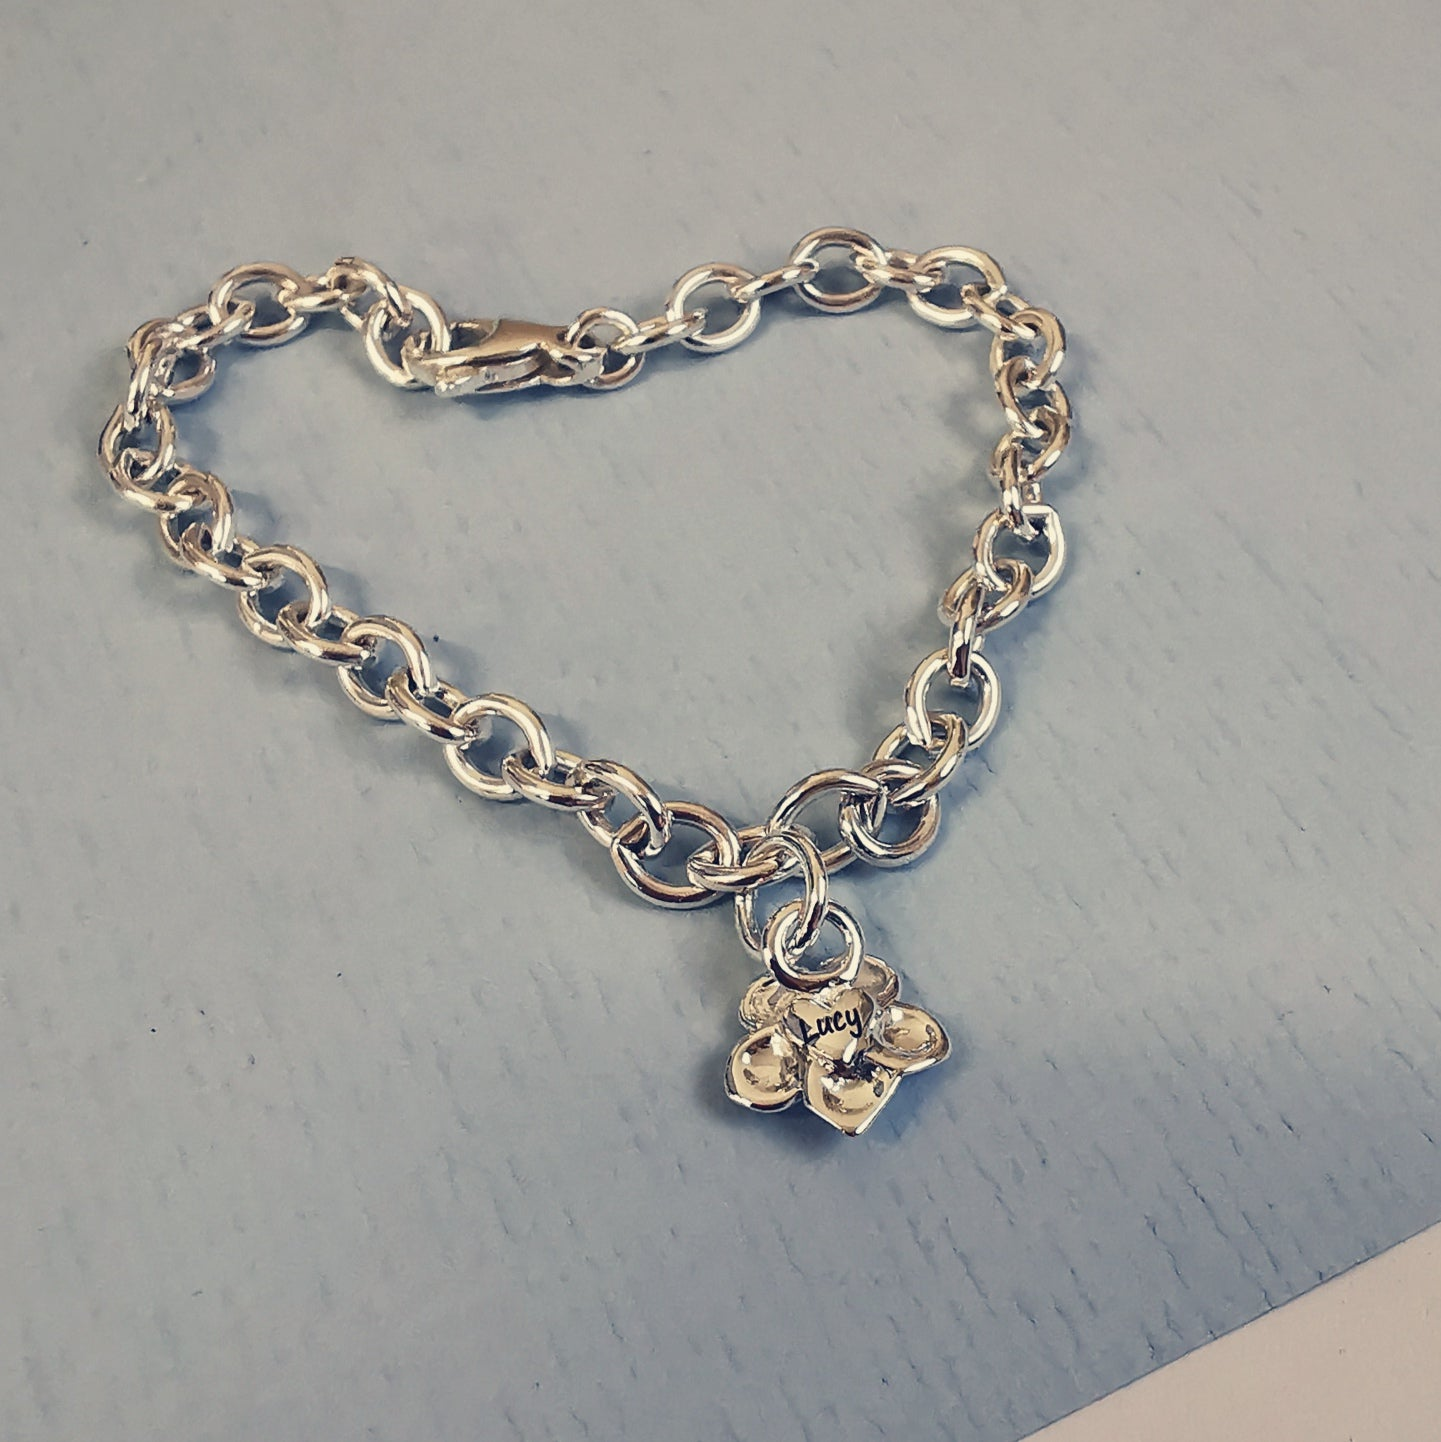 engraved forget me not memorial charm bracelet for loss